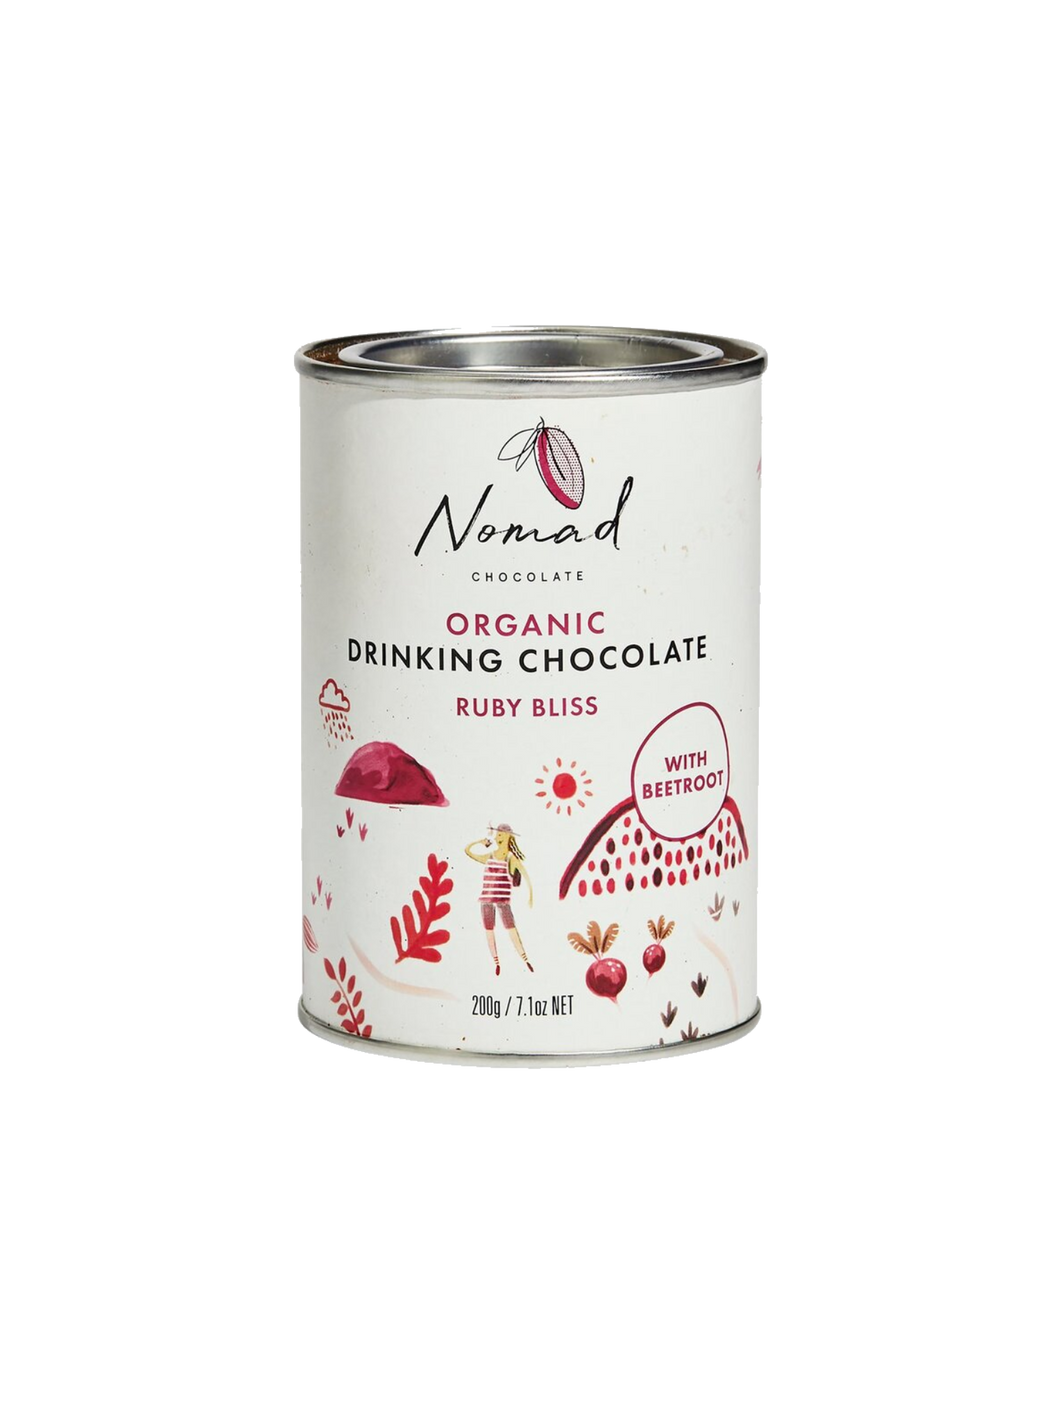 Nomad Chocolate Dark hot chocolate with spices and beetroot, vegan, organic, dairy and gluten free hot chocolate.